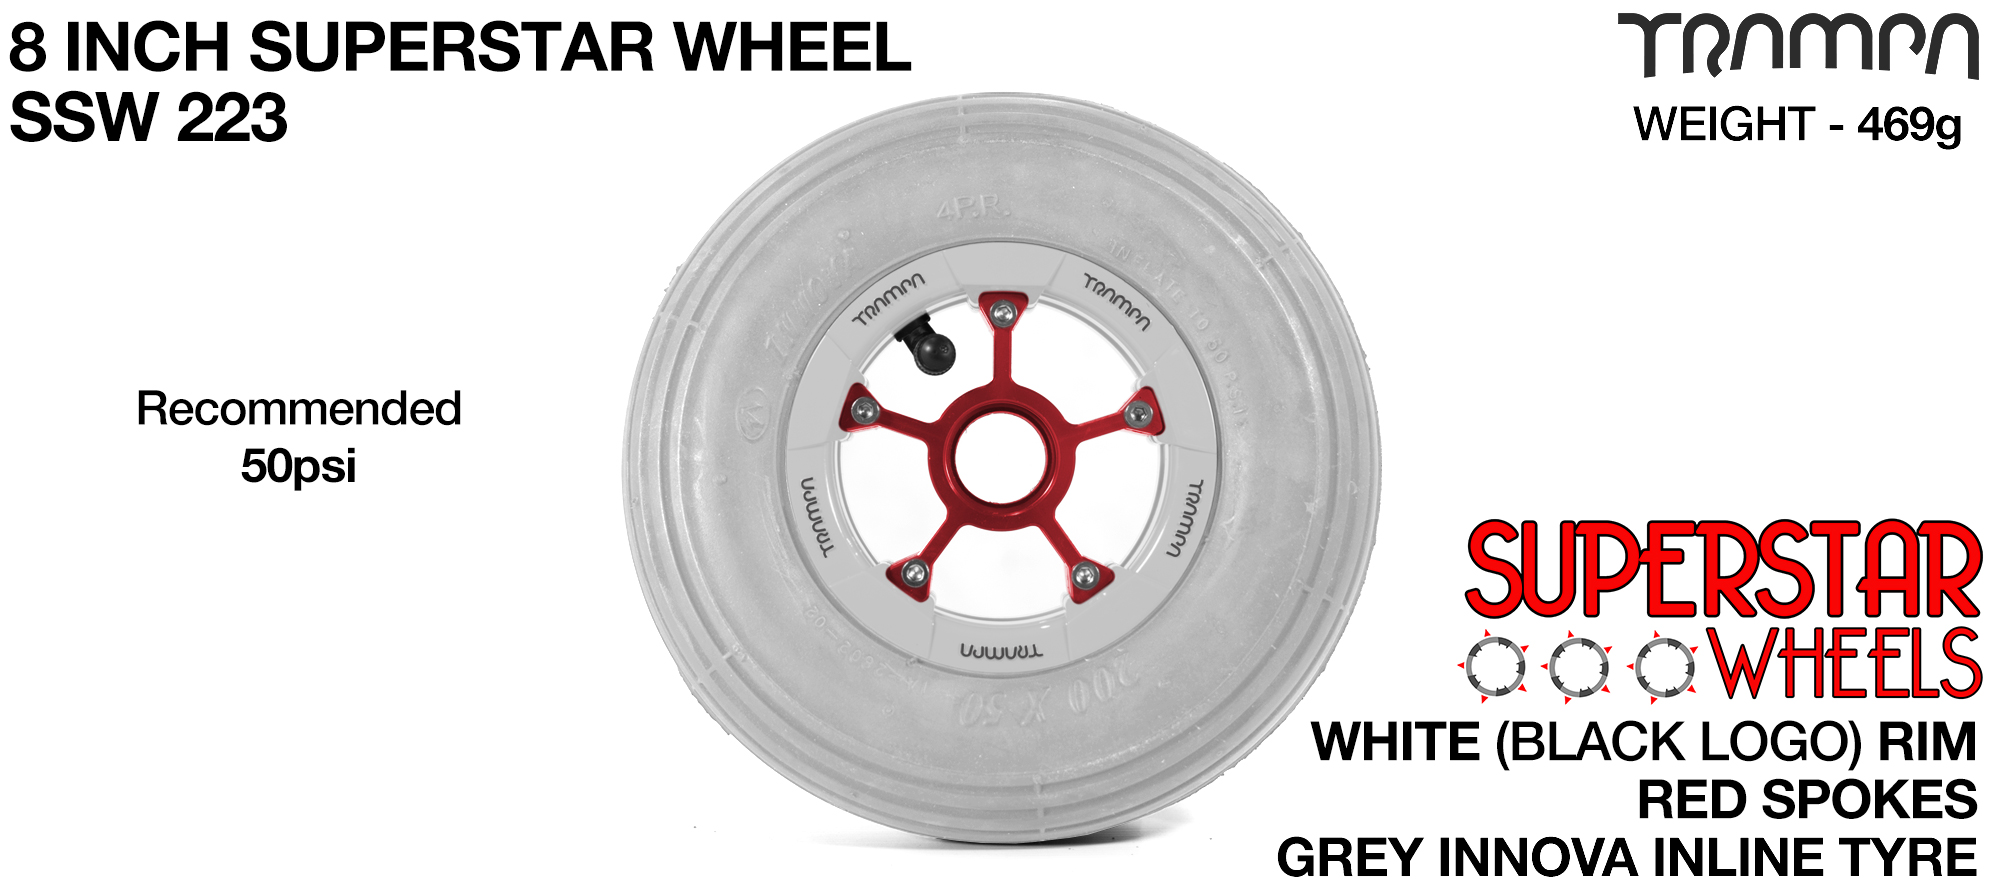 Superstar 8 Inch Wheel - White Superstar Rim Red Anodised Spokes & Grey 8 Inch Inline Tyre